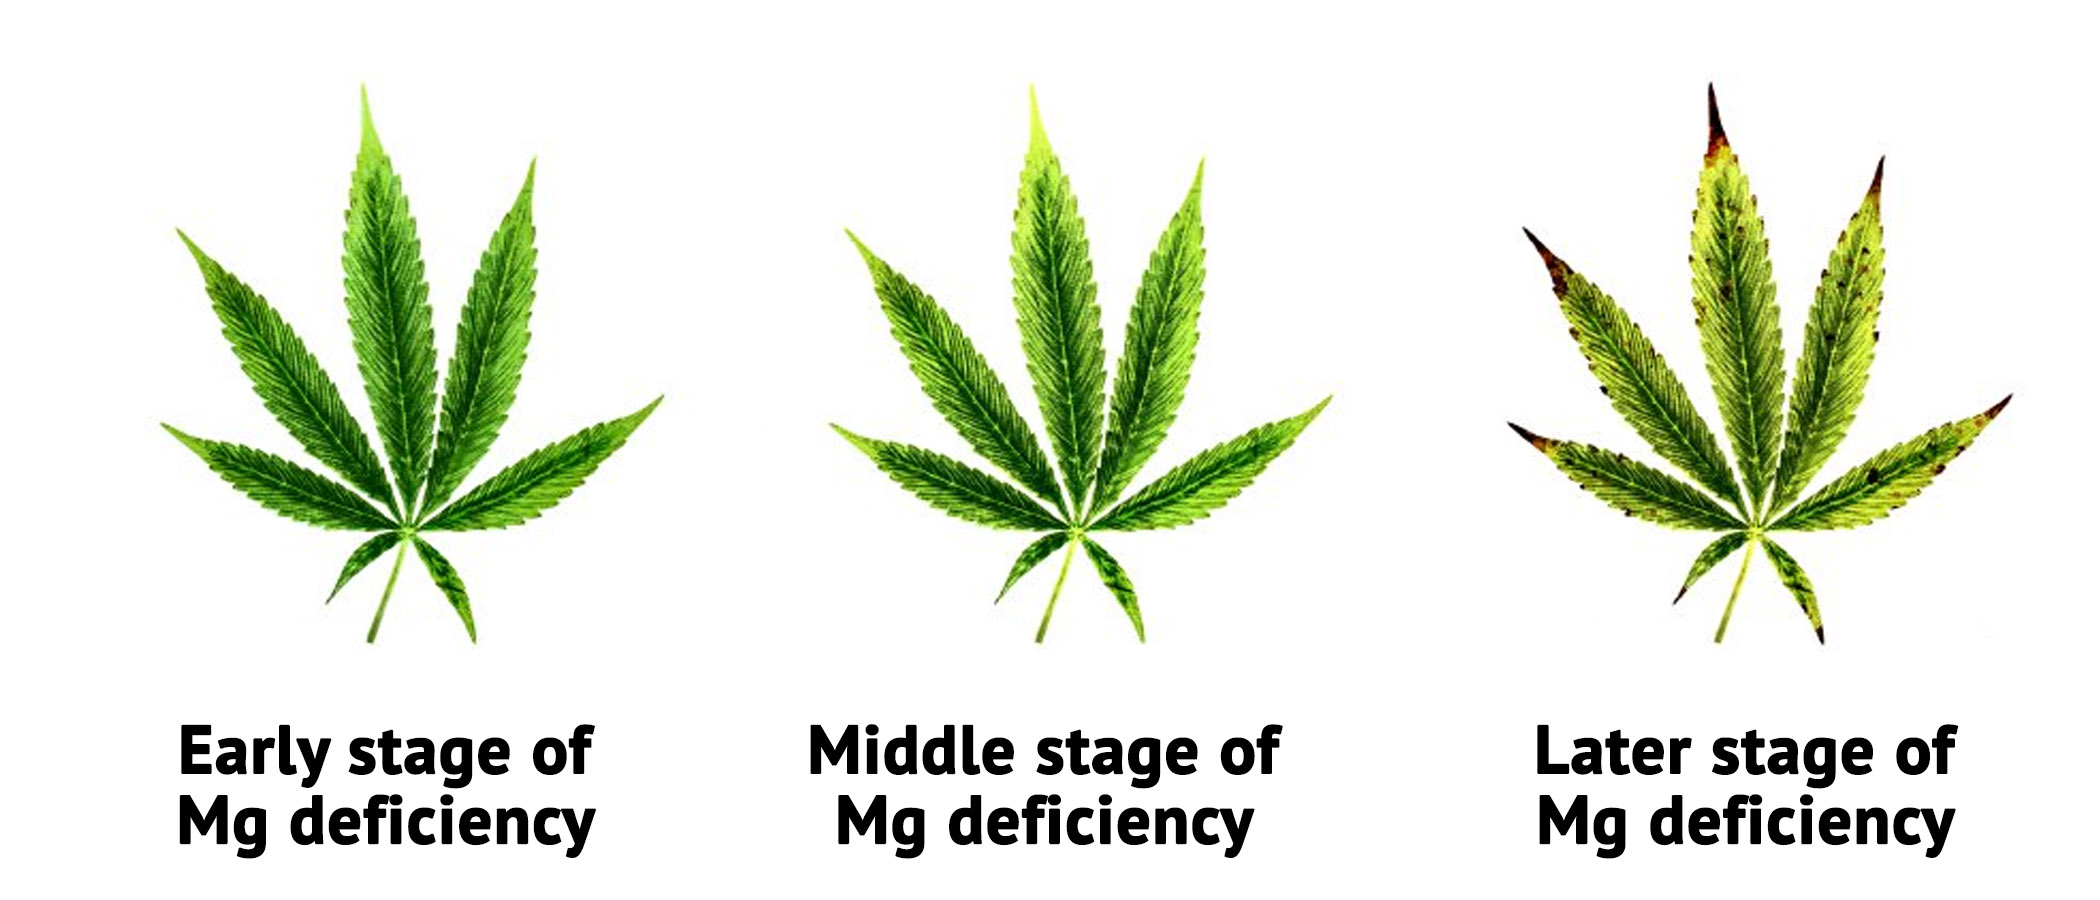 Magnesium Deficiency In Cannabis Plants - How To Spot It ...